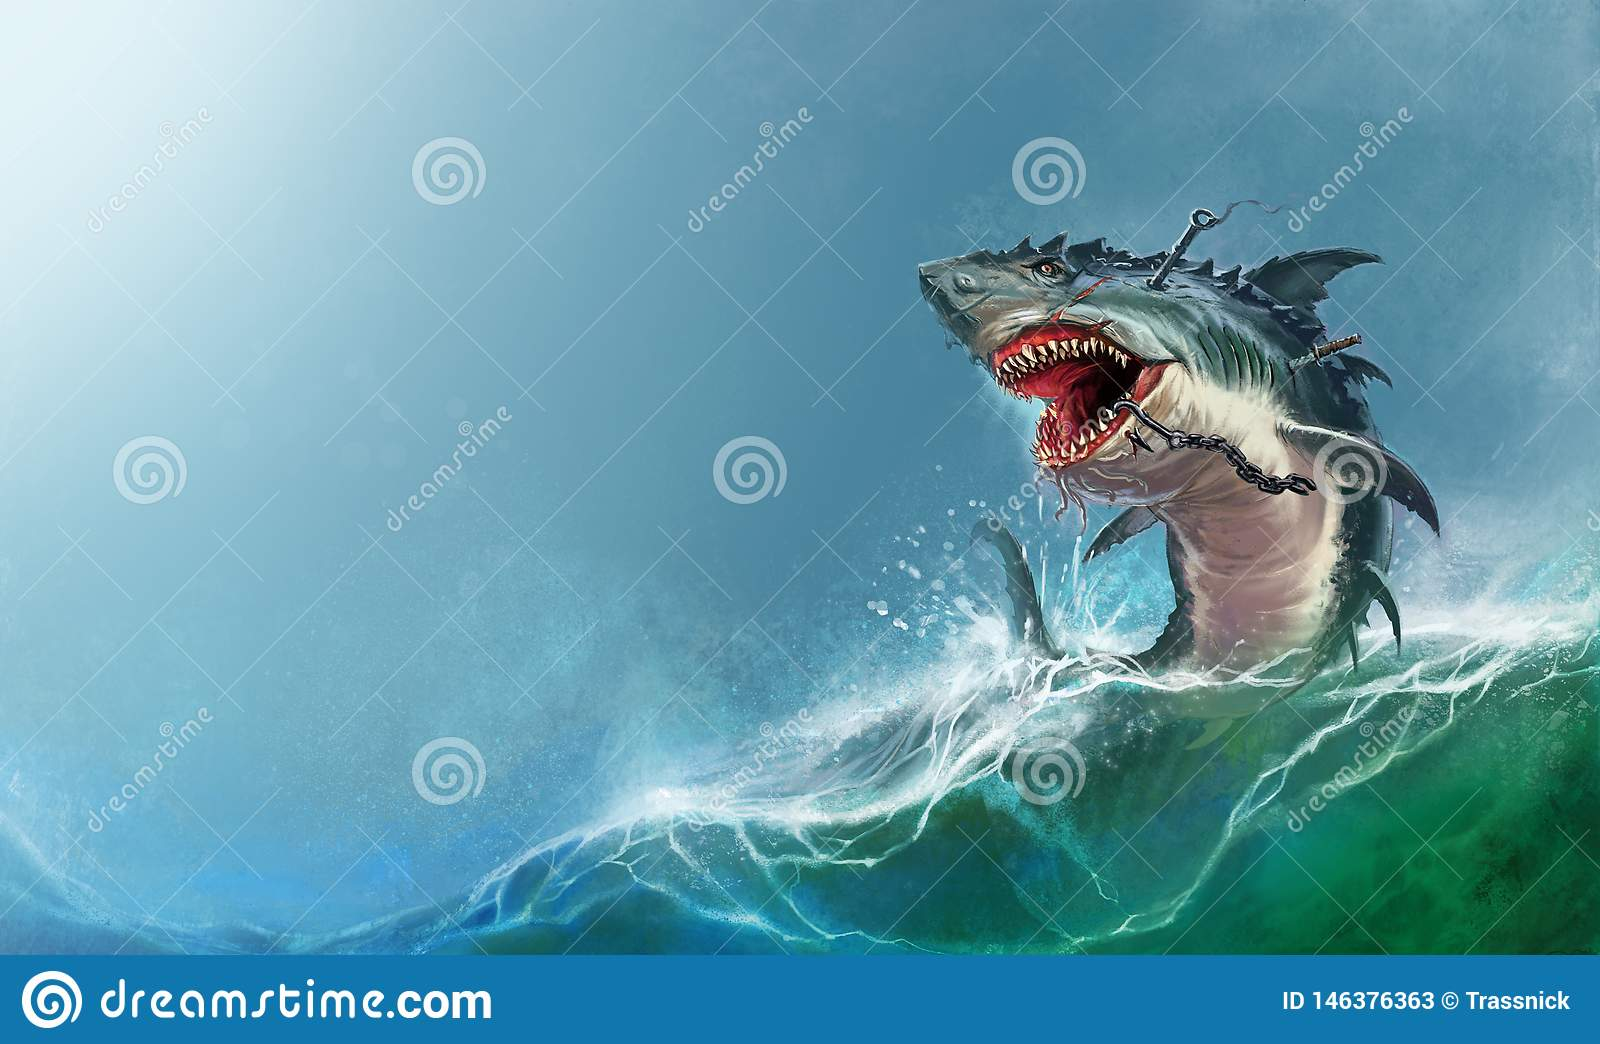 Big Monster Shark Jumping Out Of The Waves Realistic